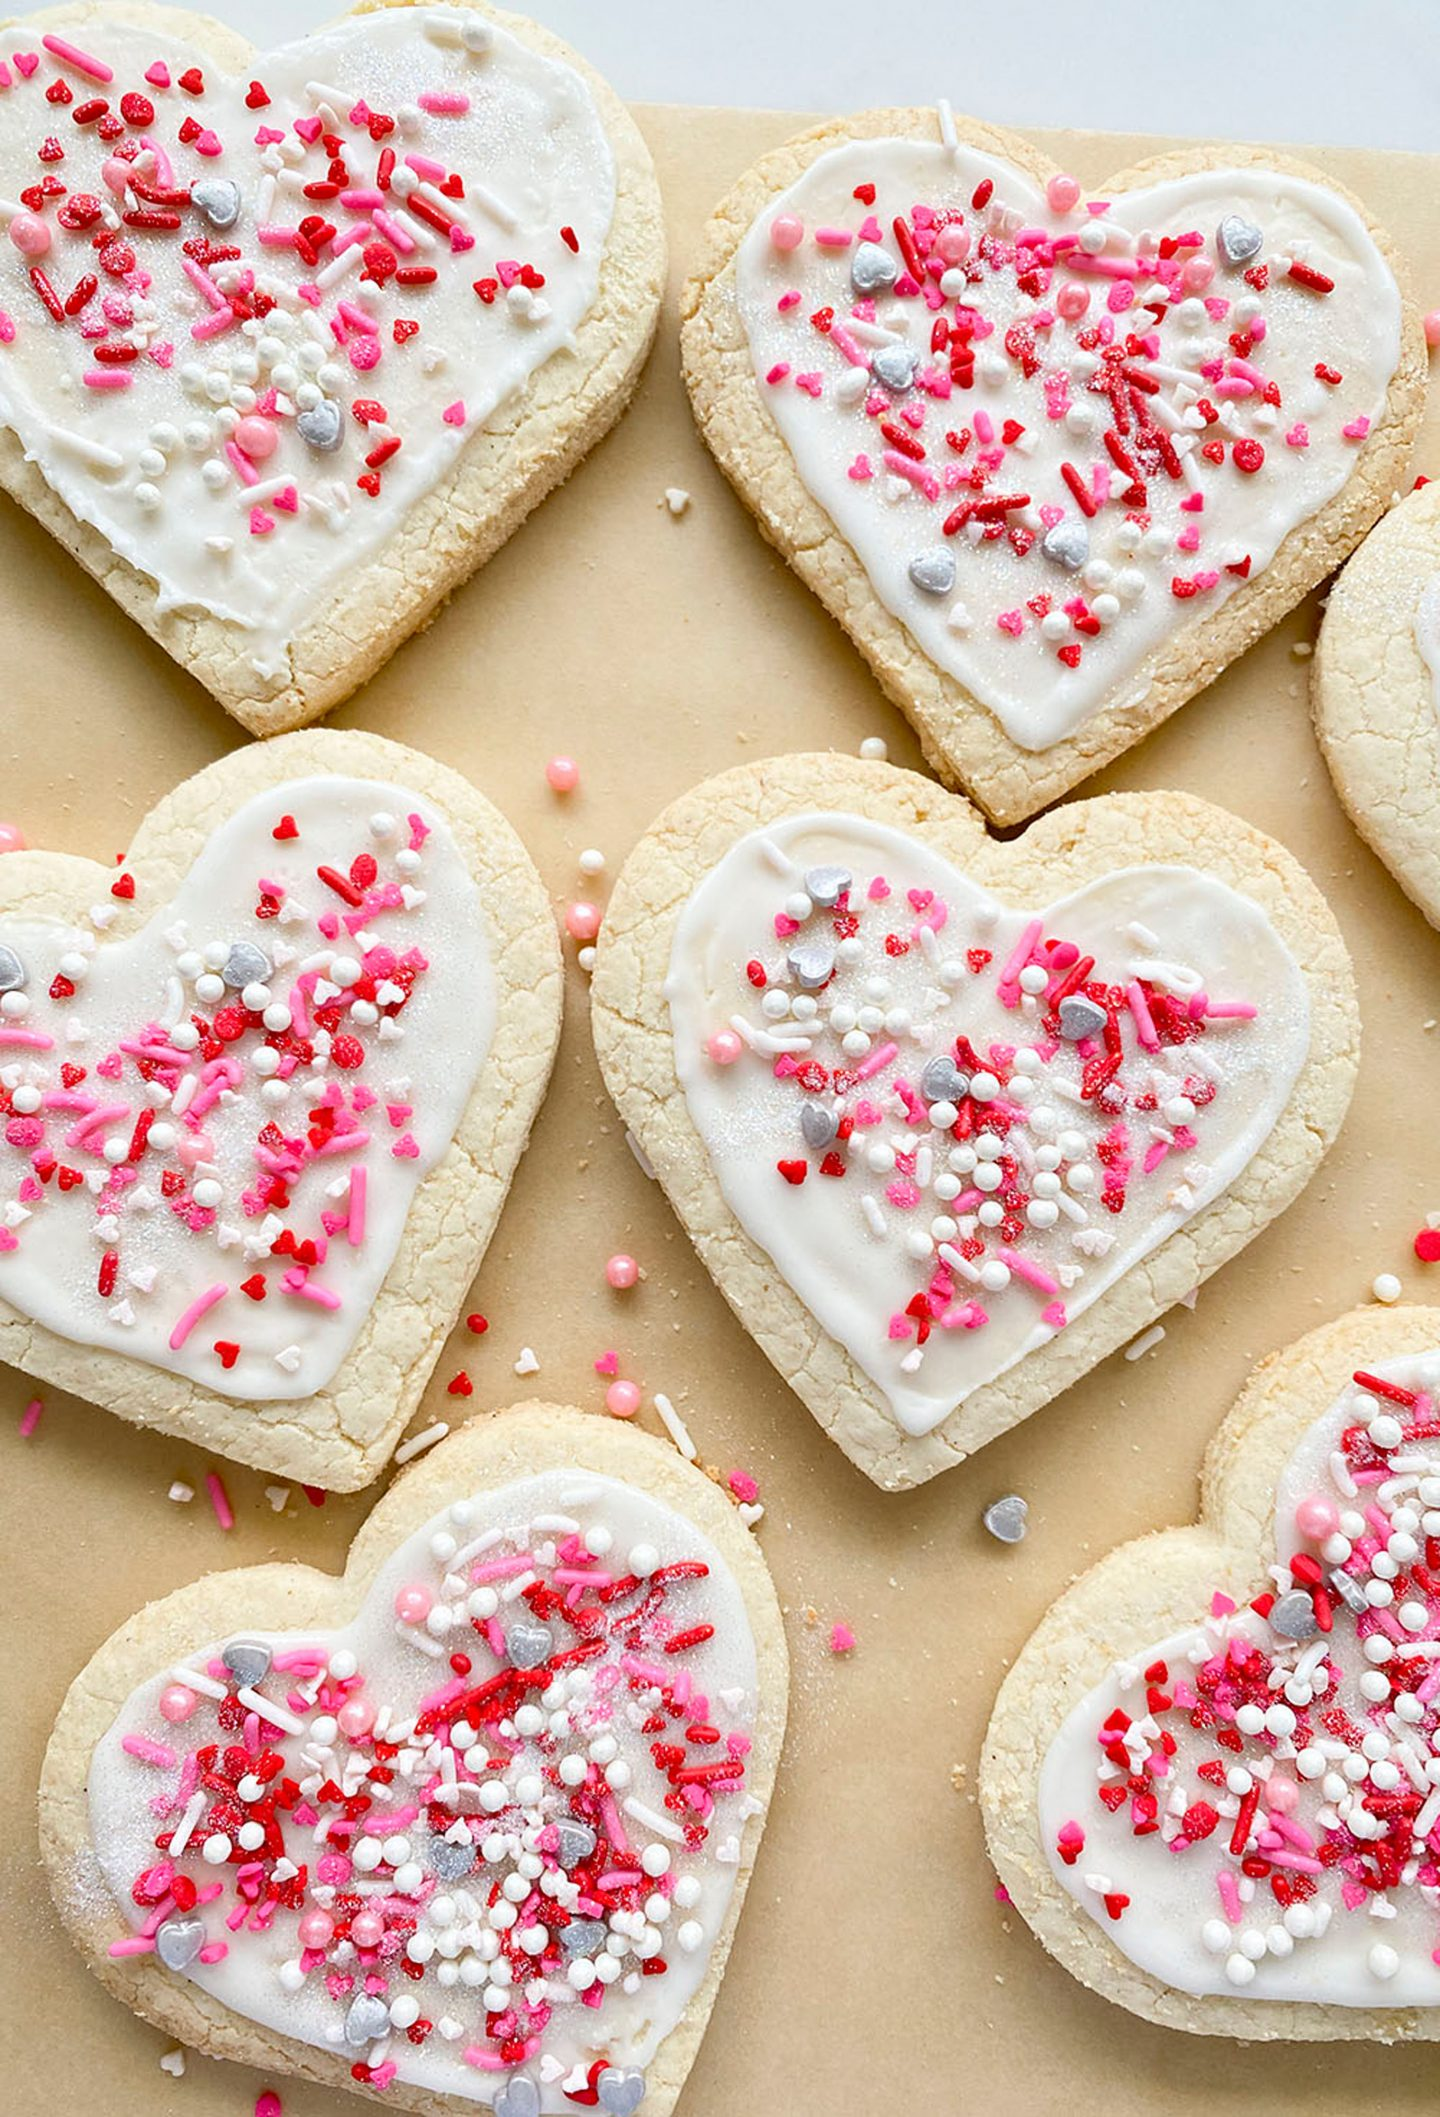 Heart shaped cookies. Gluten & Dairy Free Cut Out Sugar Cookies